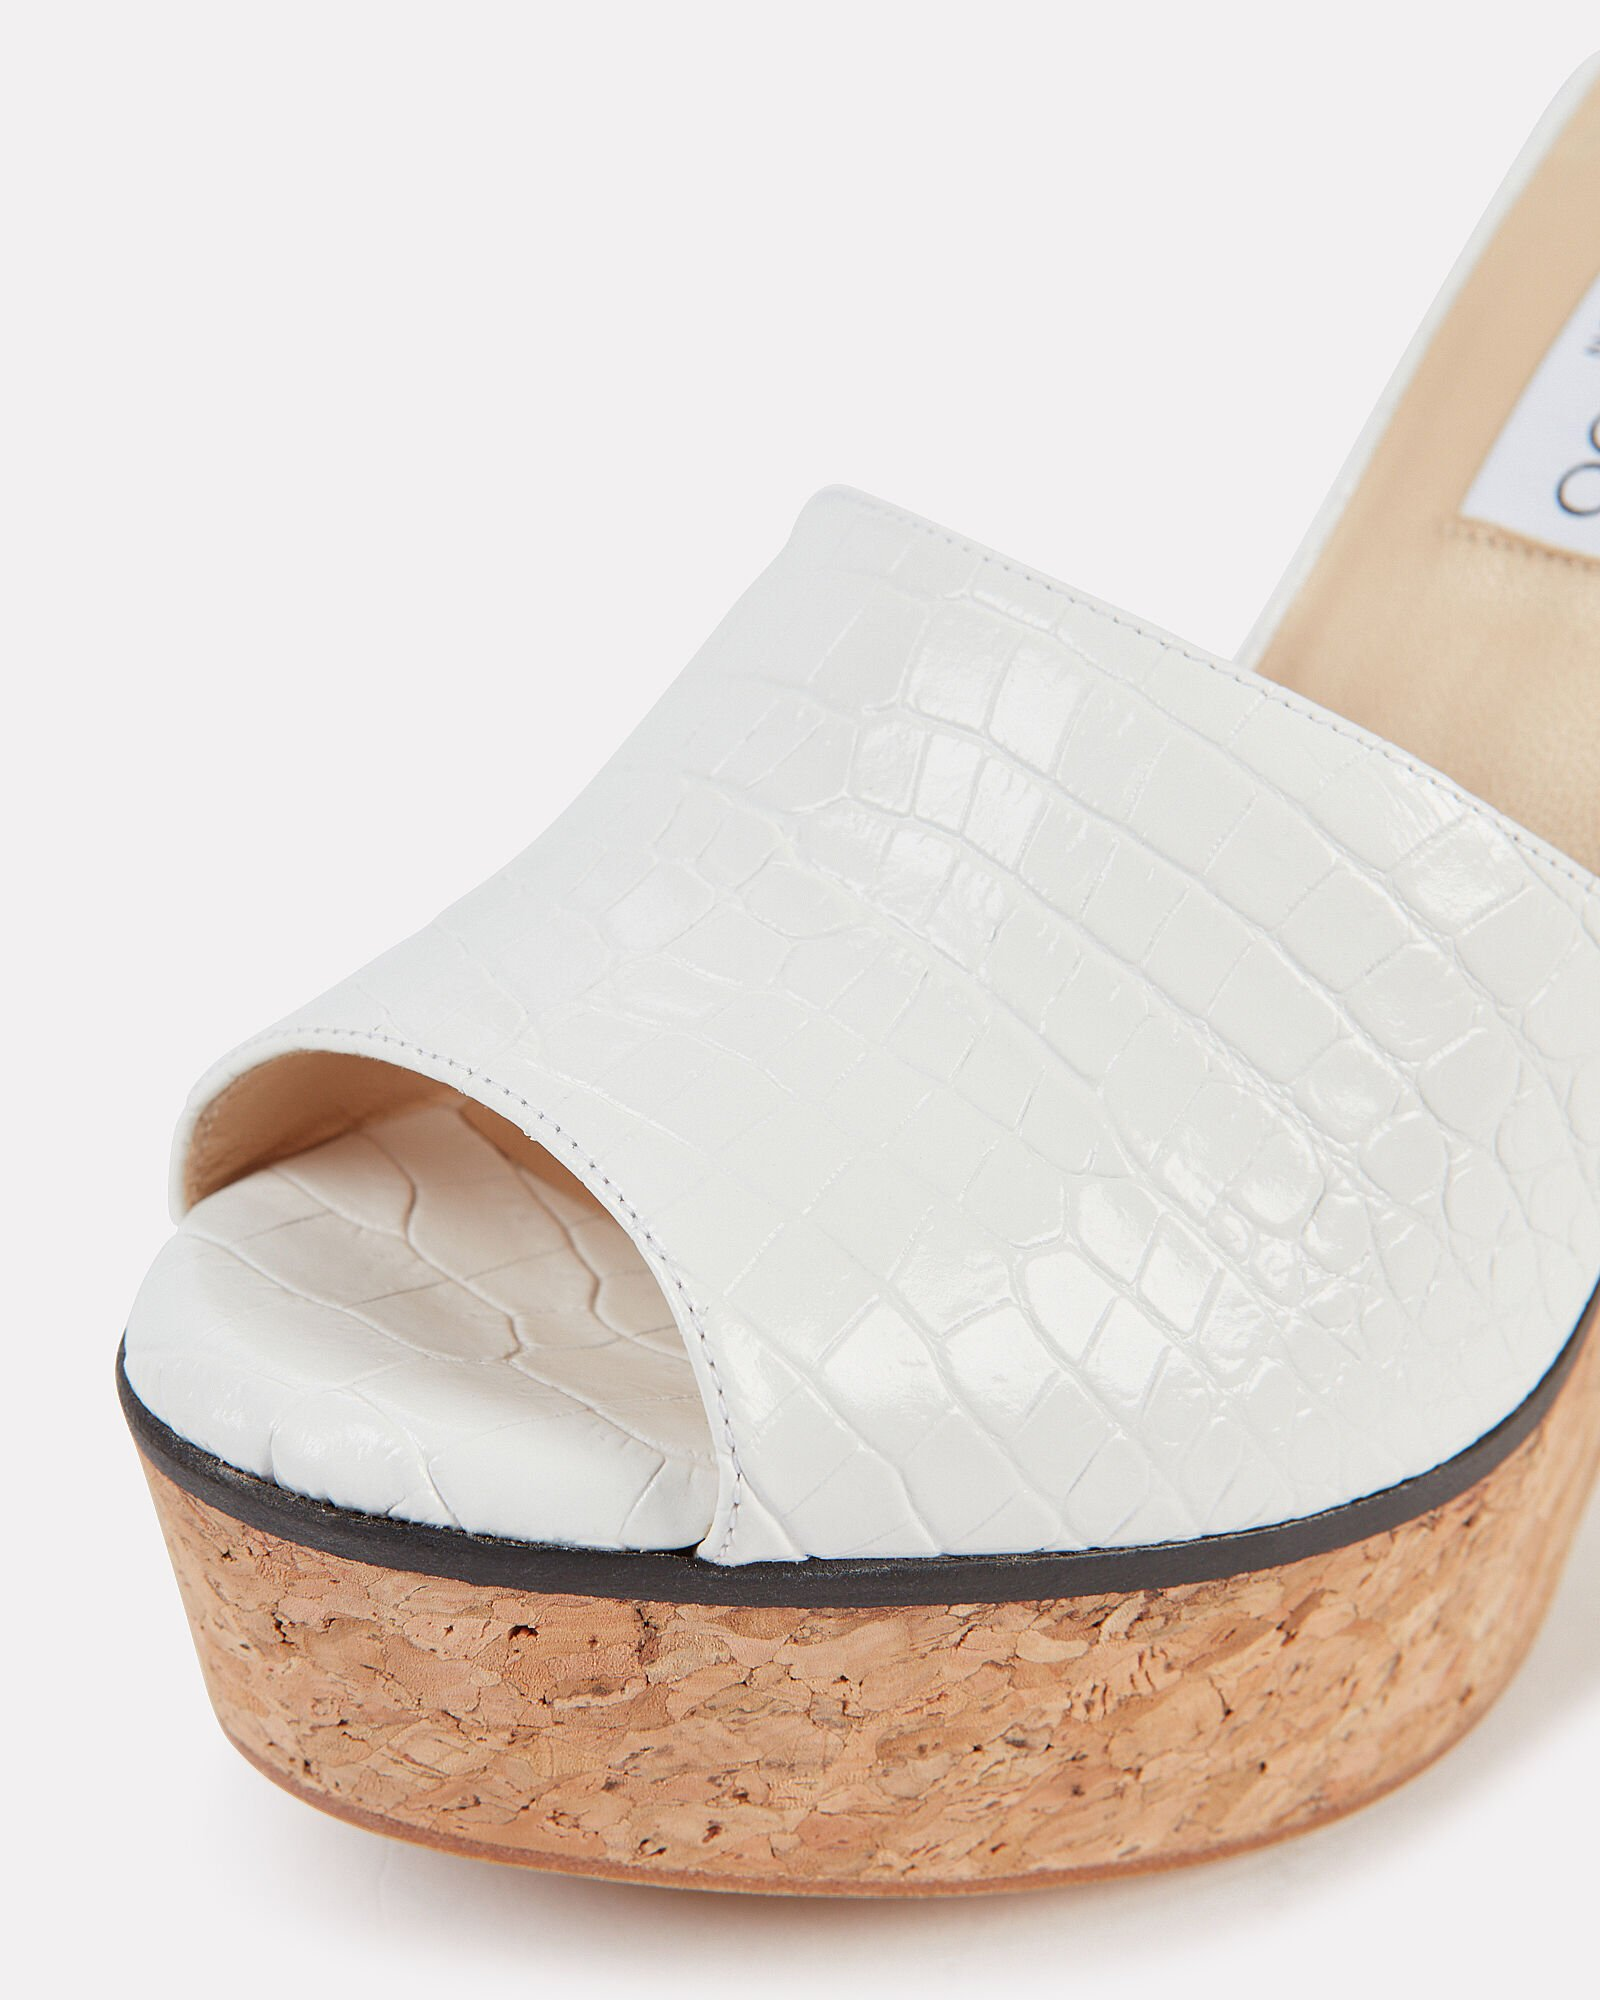 Deedee Croc-Embossed Platform Sandals, WHITE, hi-res